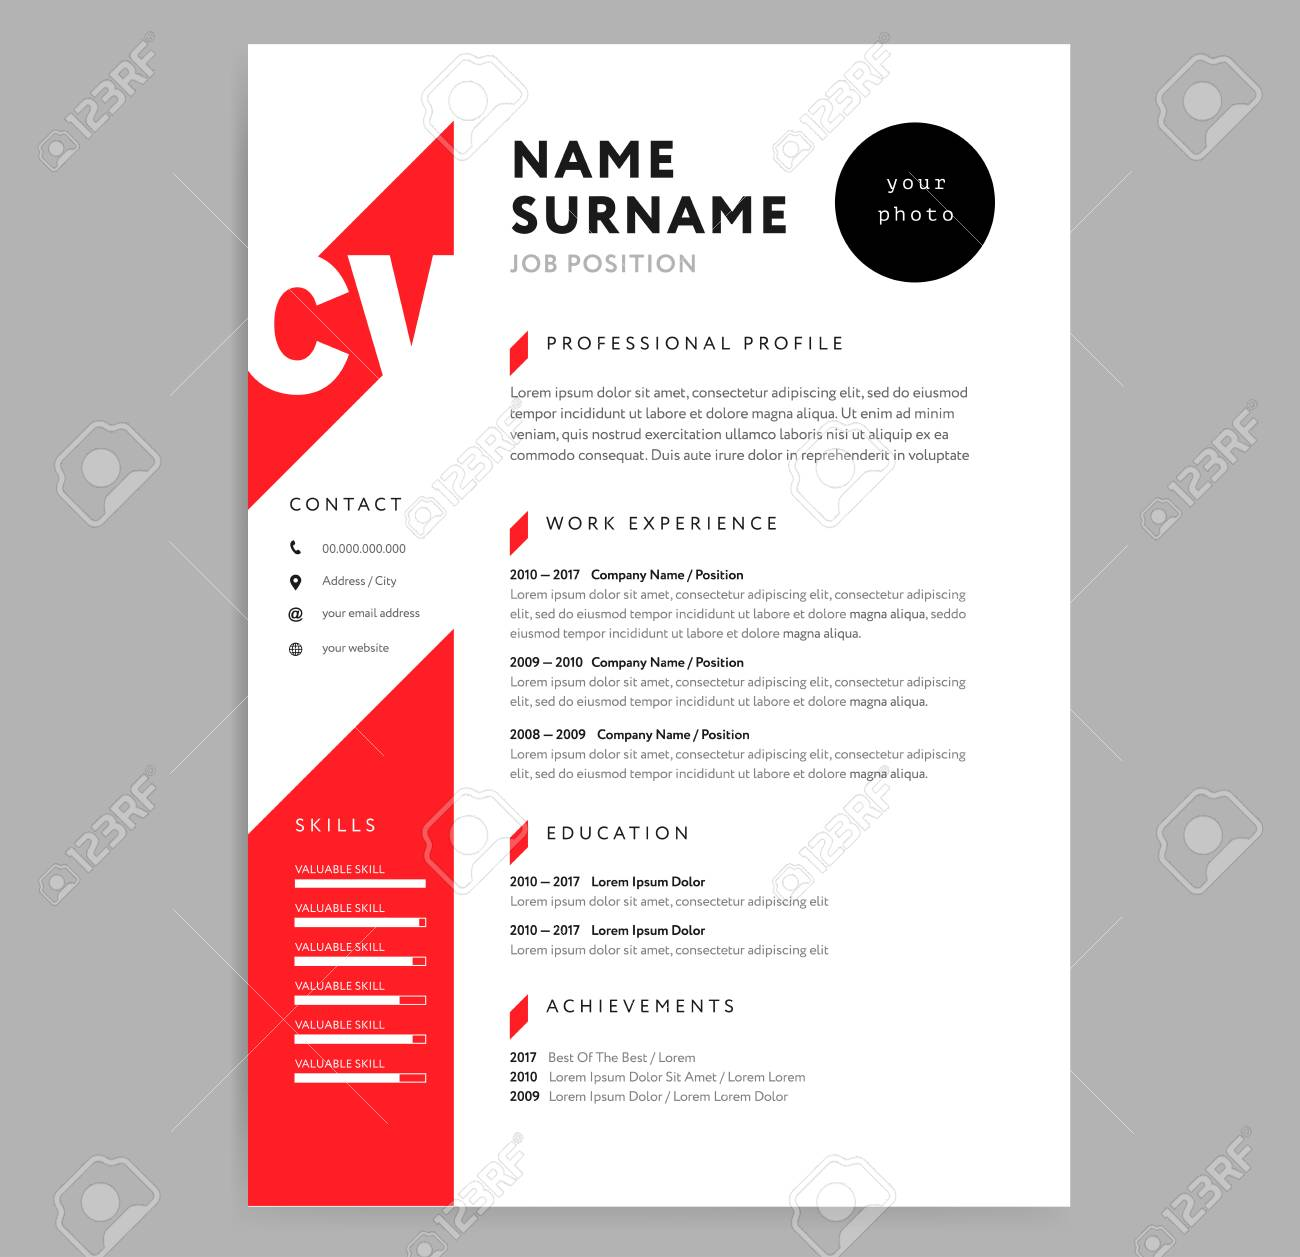 Creative Cv Resume Template With Red Color Background Vector Royalty Free Cliparts Vectors And Stock Illustration Image 97283376